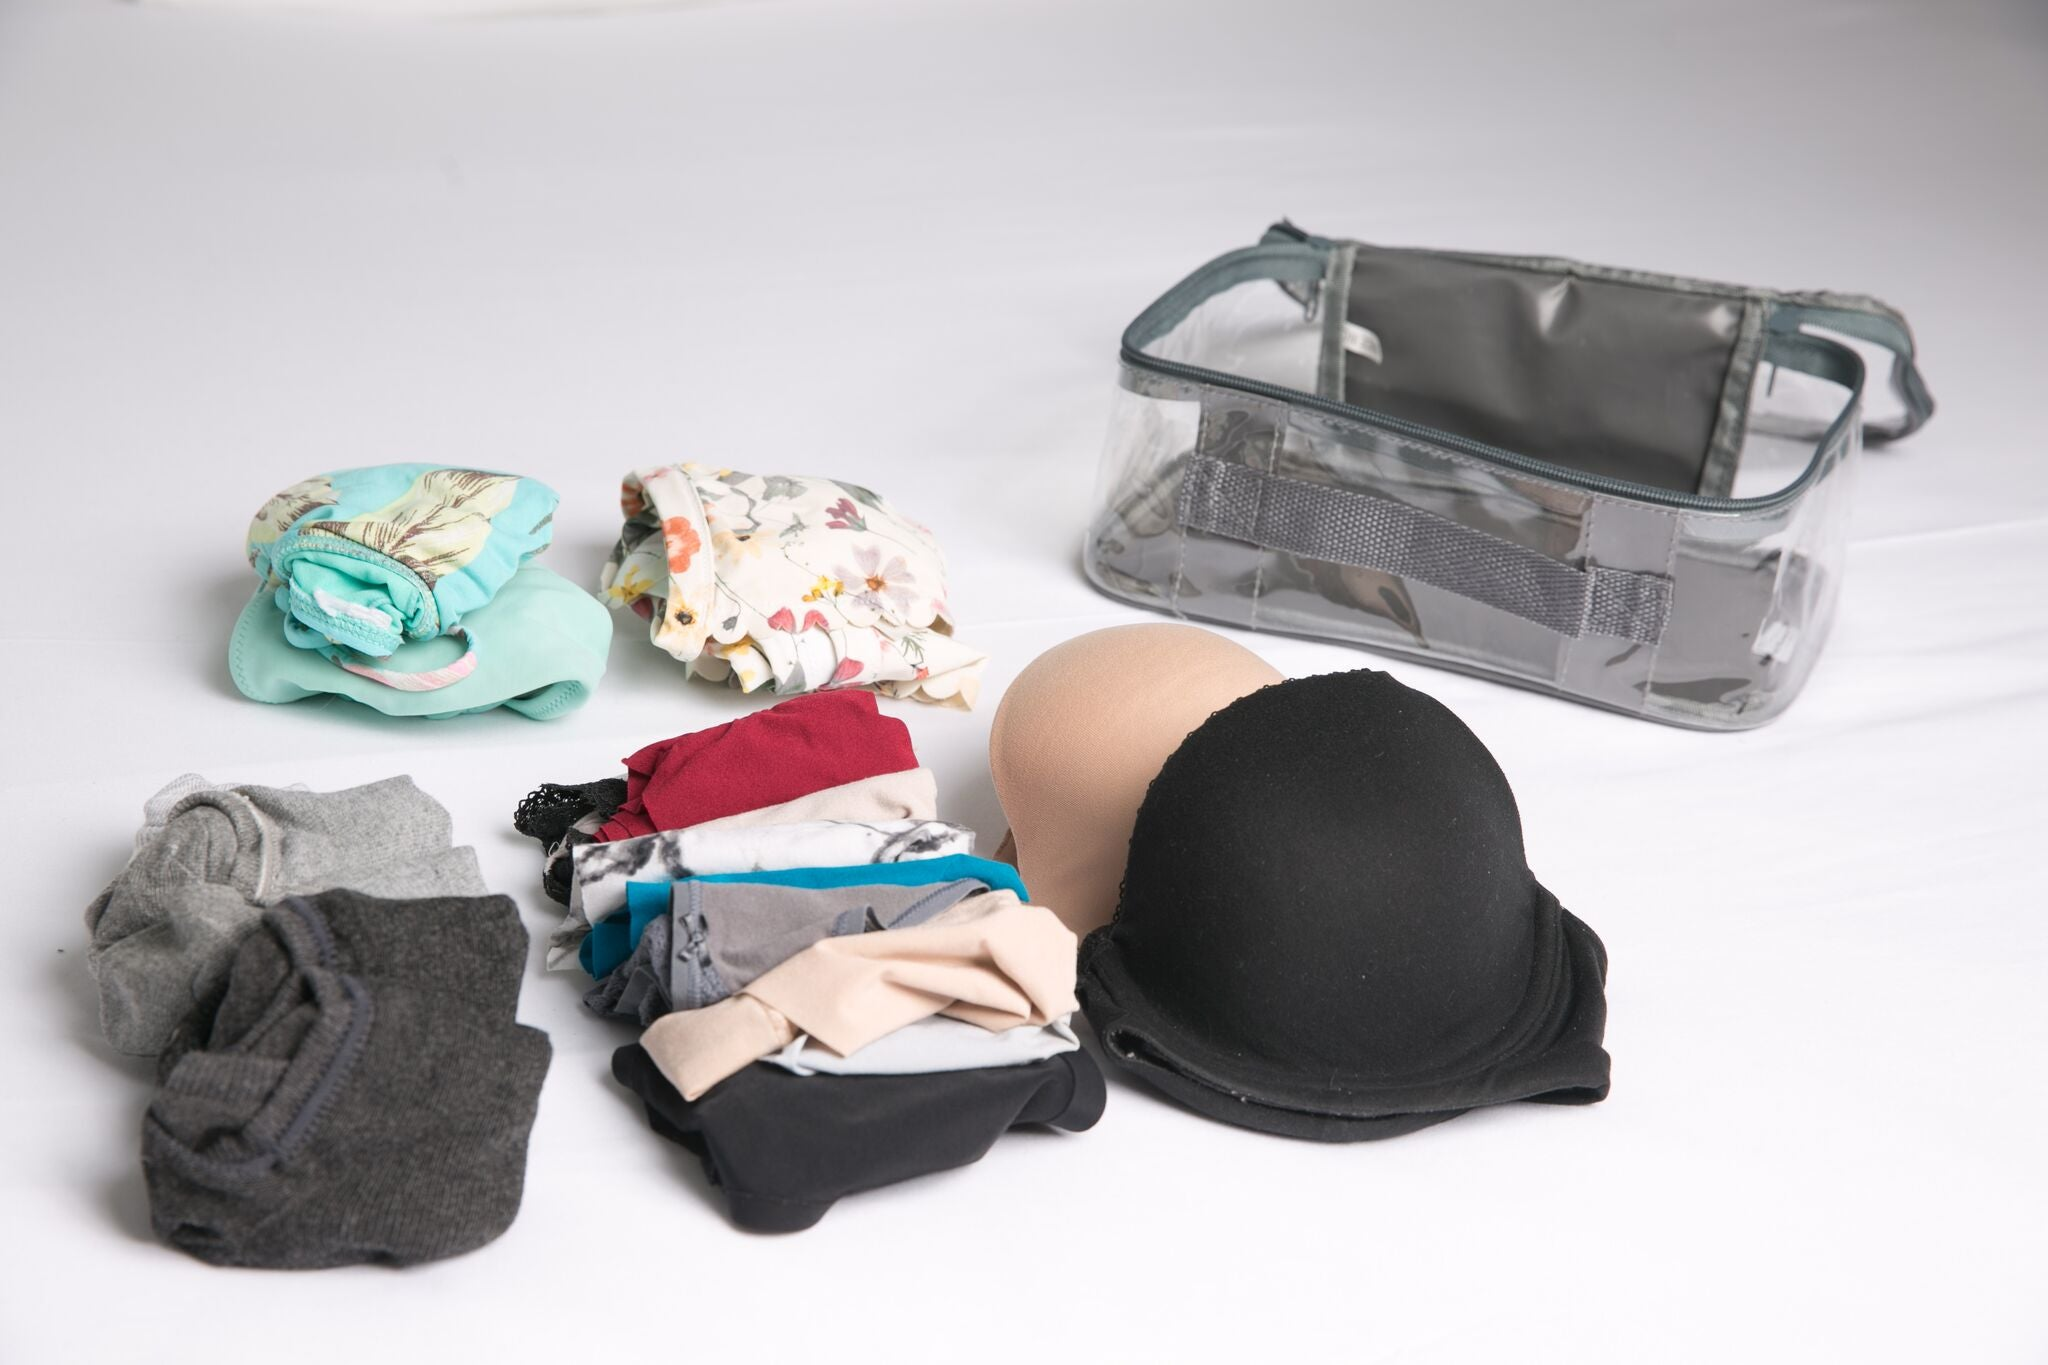 Small packing cube for organizing underwear